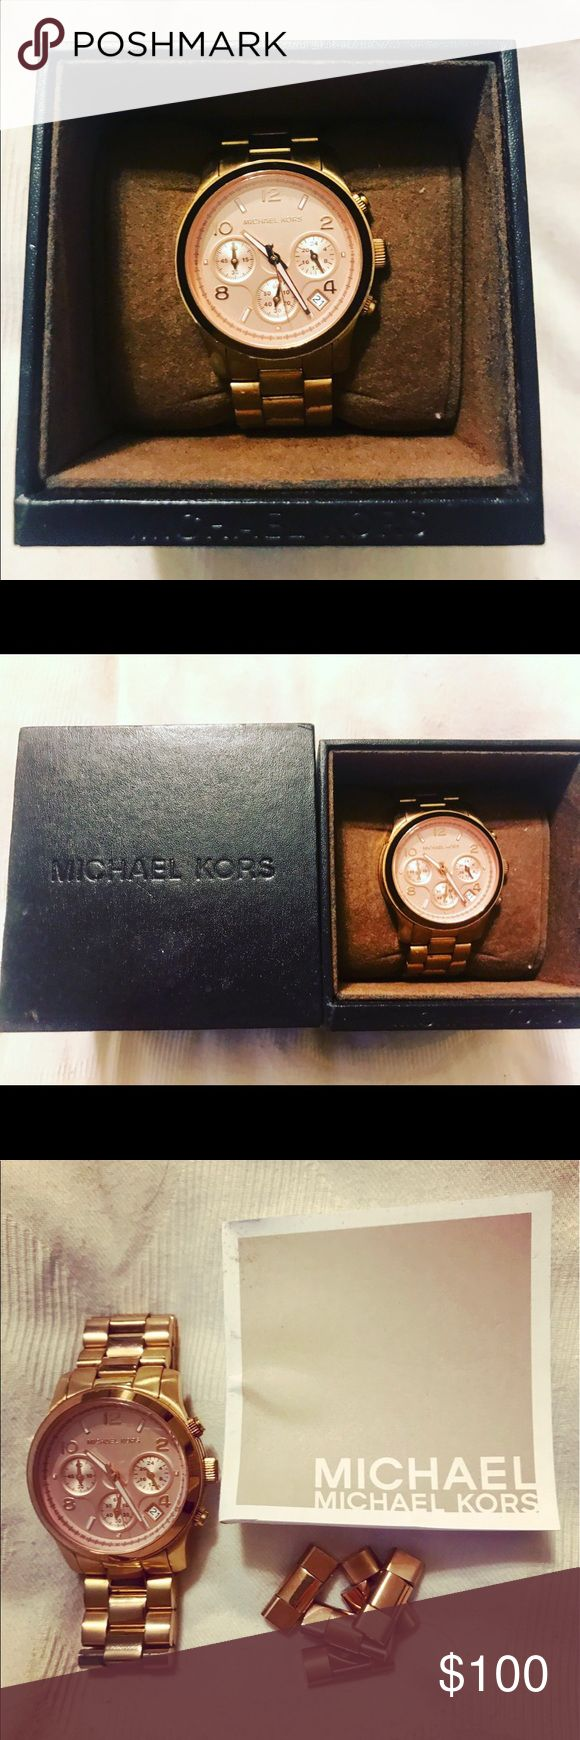 Michael Kors MK5430 Womens Ritz Rose Gold Watch. Used Michael Kors MK5430 Womens Runway Ritz Rose Gold Blush Tone Ladies Wrist Watch. PRICE IS FIRM.  Has normal wear and needs a new battery.  Comes with box and additional links. Michael Kors Accessories Watches